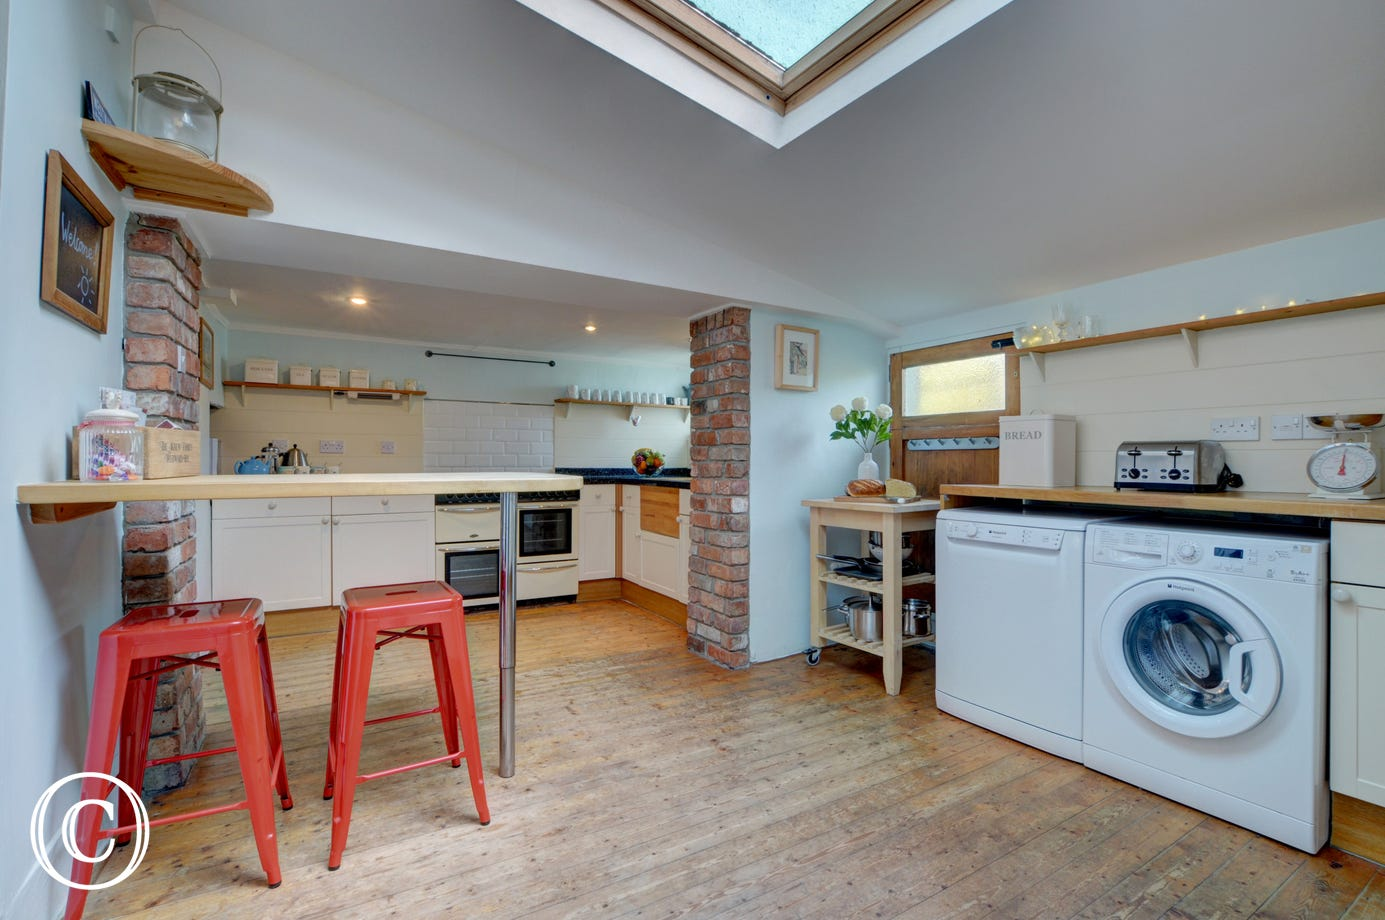 The well-equipped large kitchen with low ceiling in parts, original wooden floors, breakfast bar and large range cooker